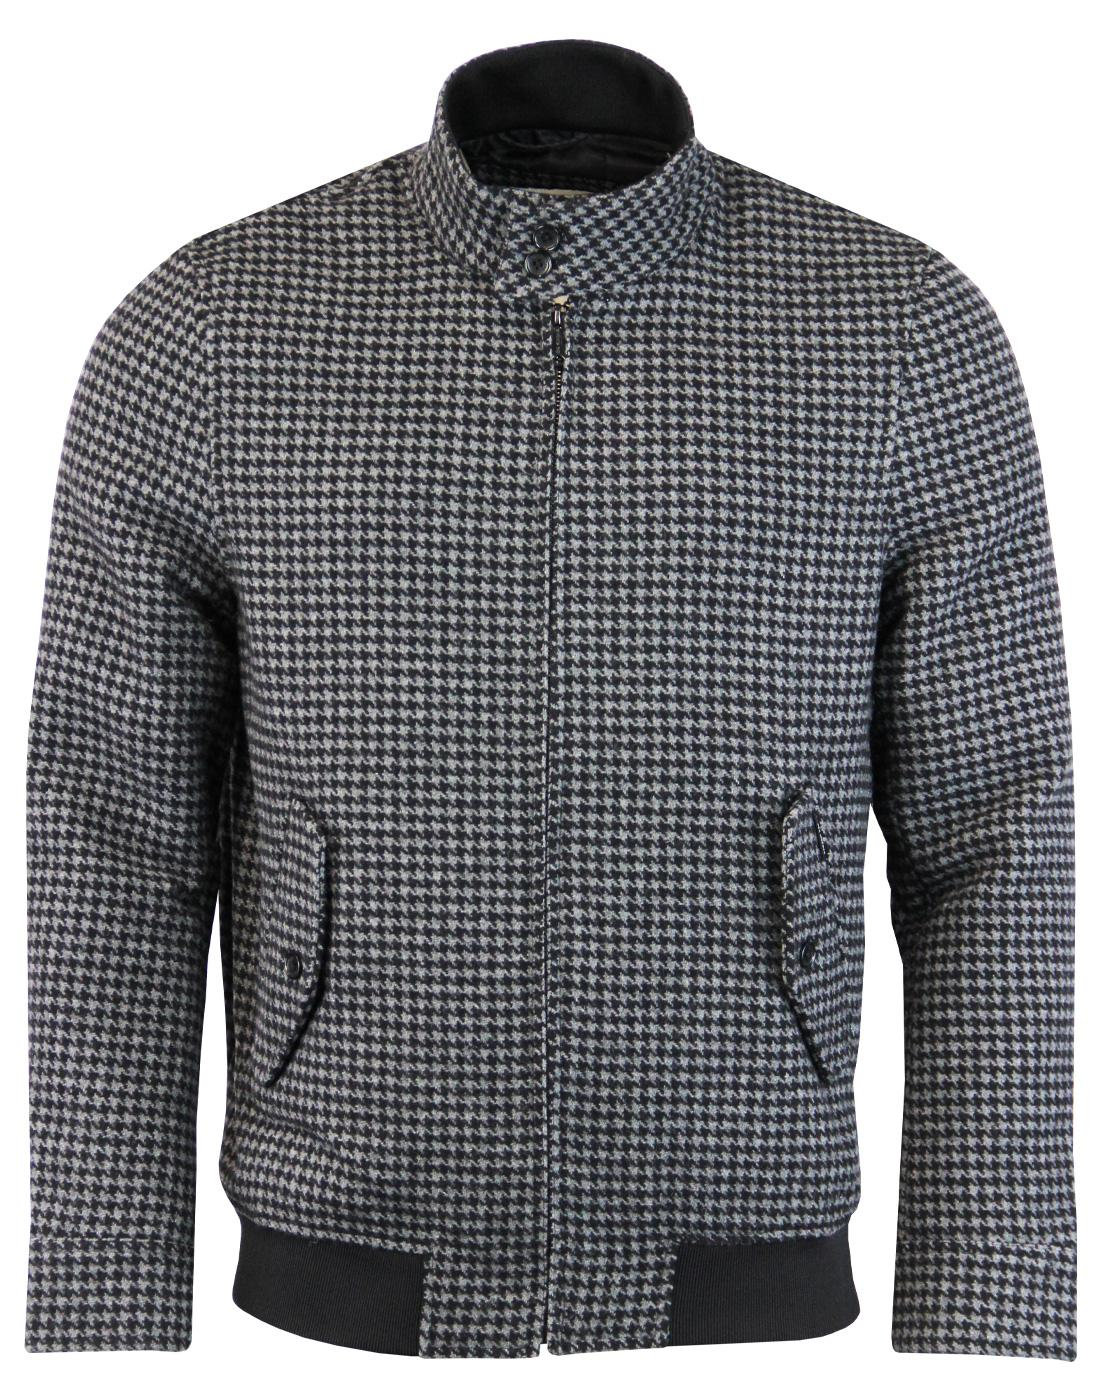 BEN SHERMAN Mod Dogtooth Wool Harrington Jacket